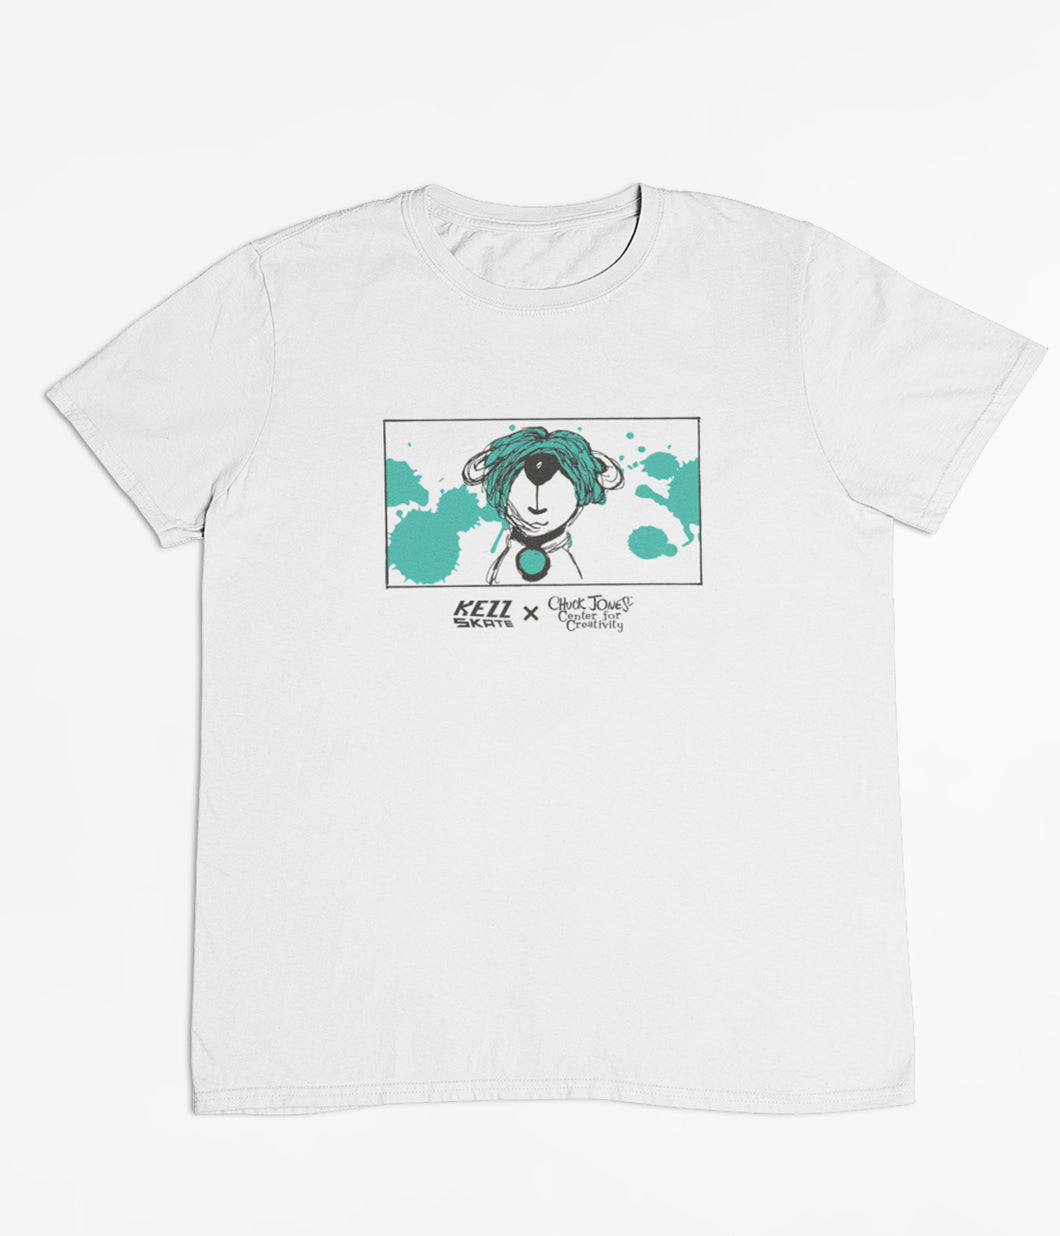 Limited Edition Splat Arthur Tee (Teal/White)